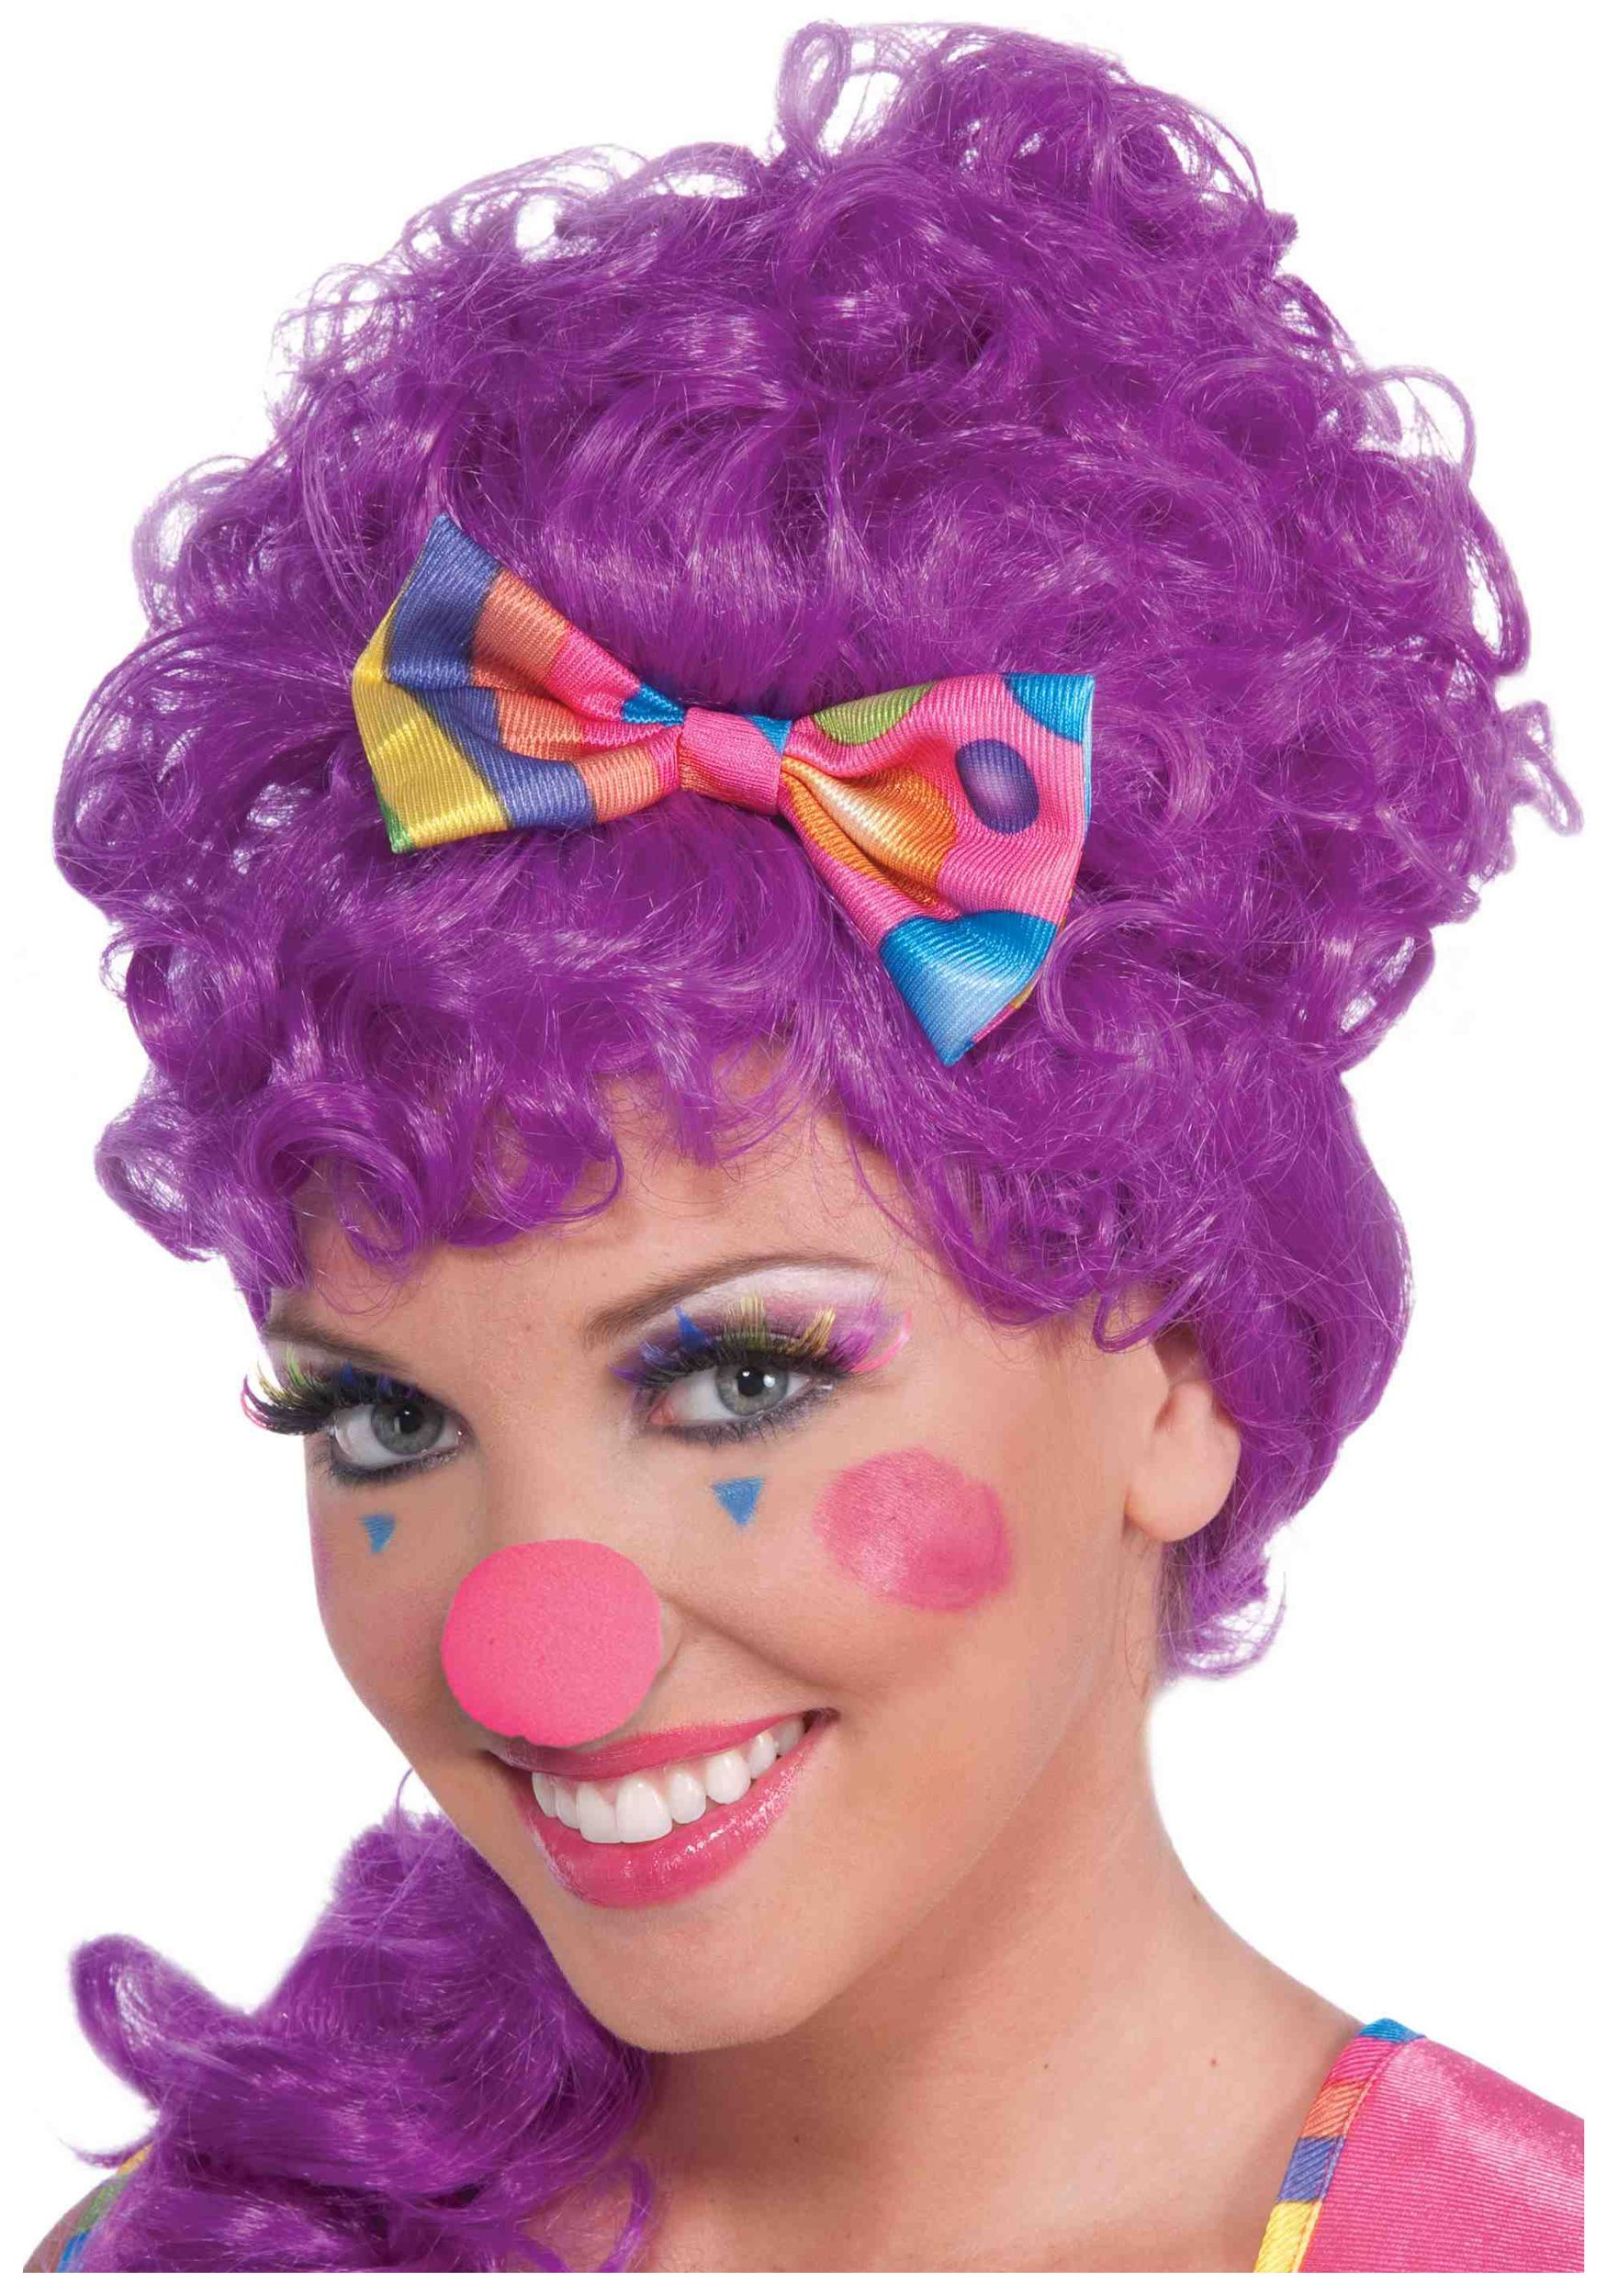 Schminktipps Clown Erwachsene Female Clown Makeup Might Do This Instead Of The All White Face